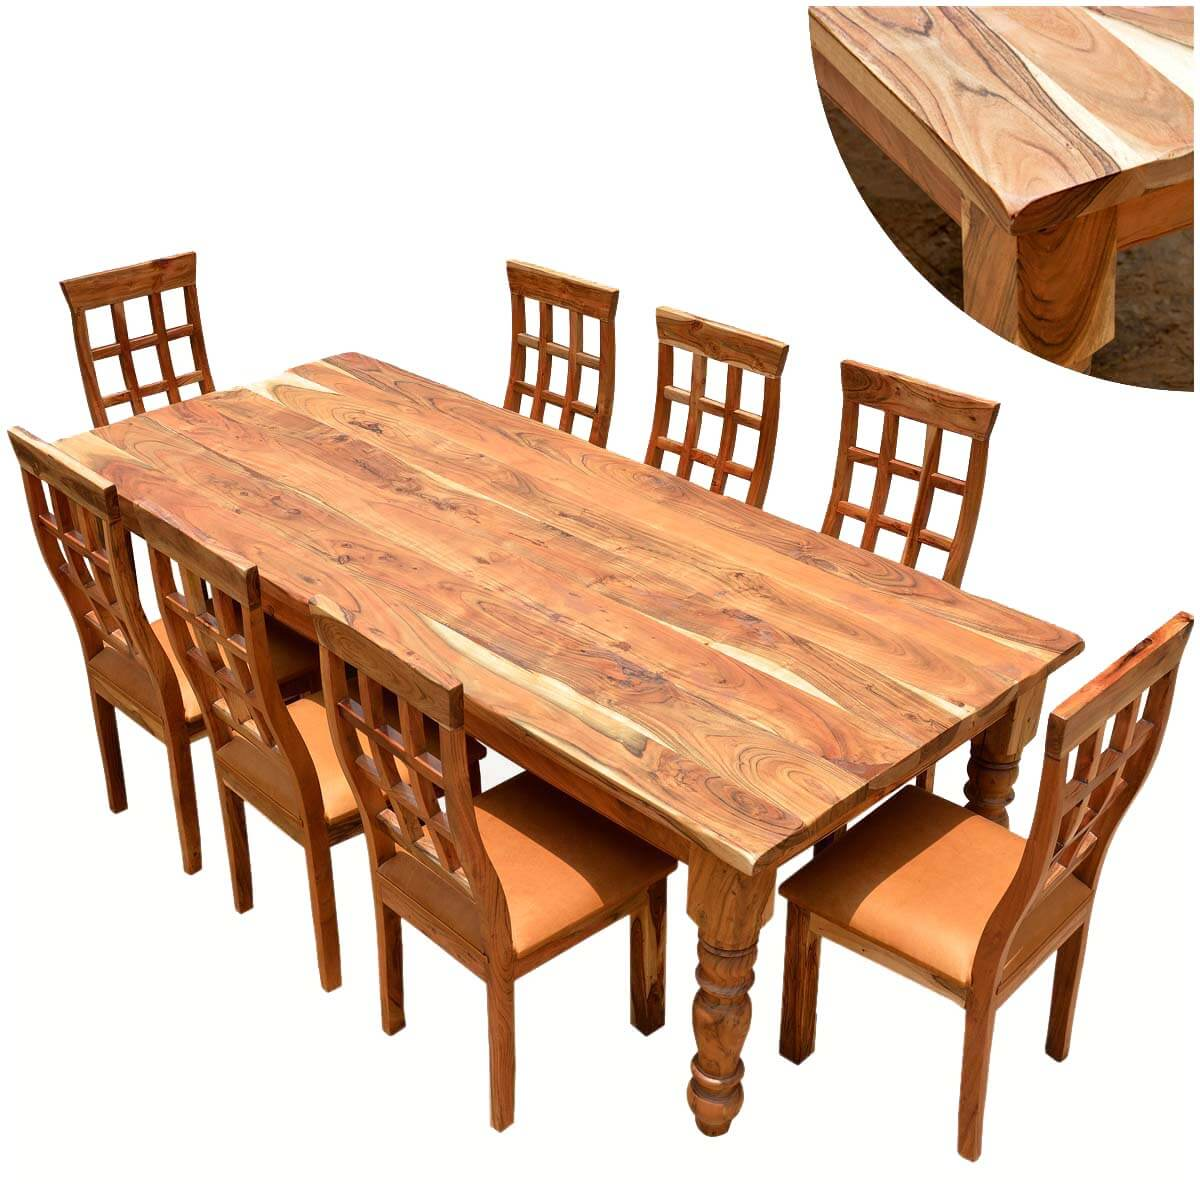 Oak Wood Table And Chairs: Rustic Furniture Farmhouse Solid Wood Dining Table Chair Set